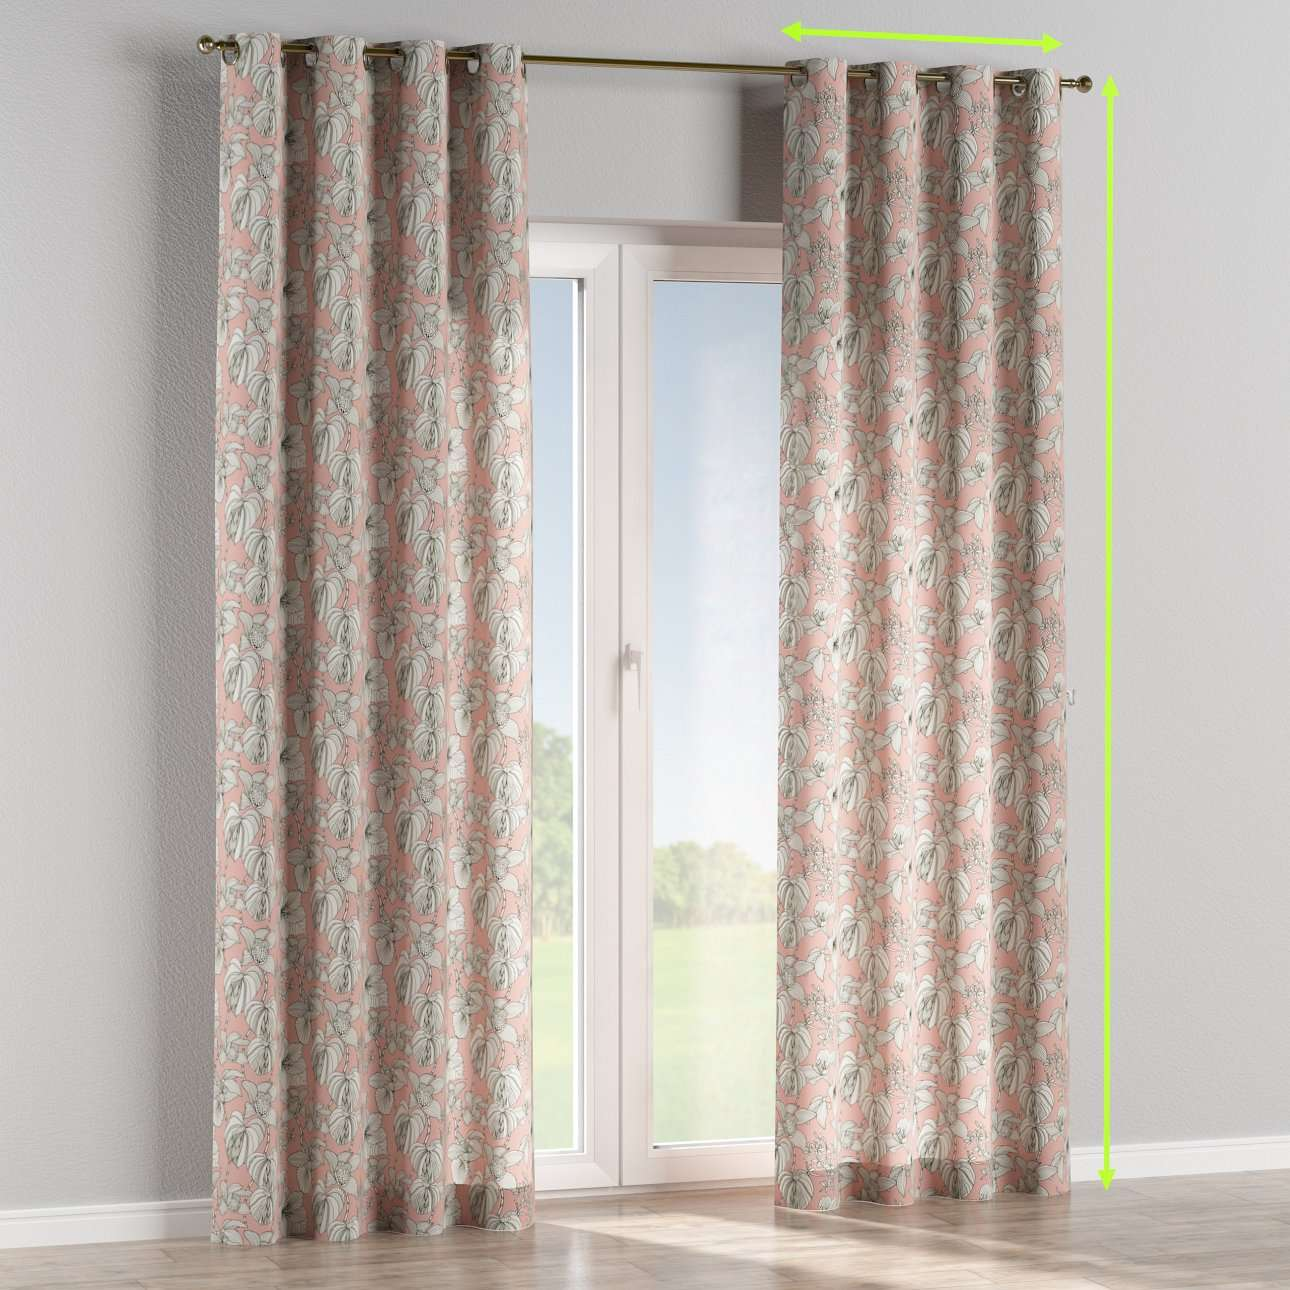 Eyelet curtain in collection SALE, fabric: 137-74